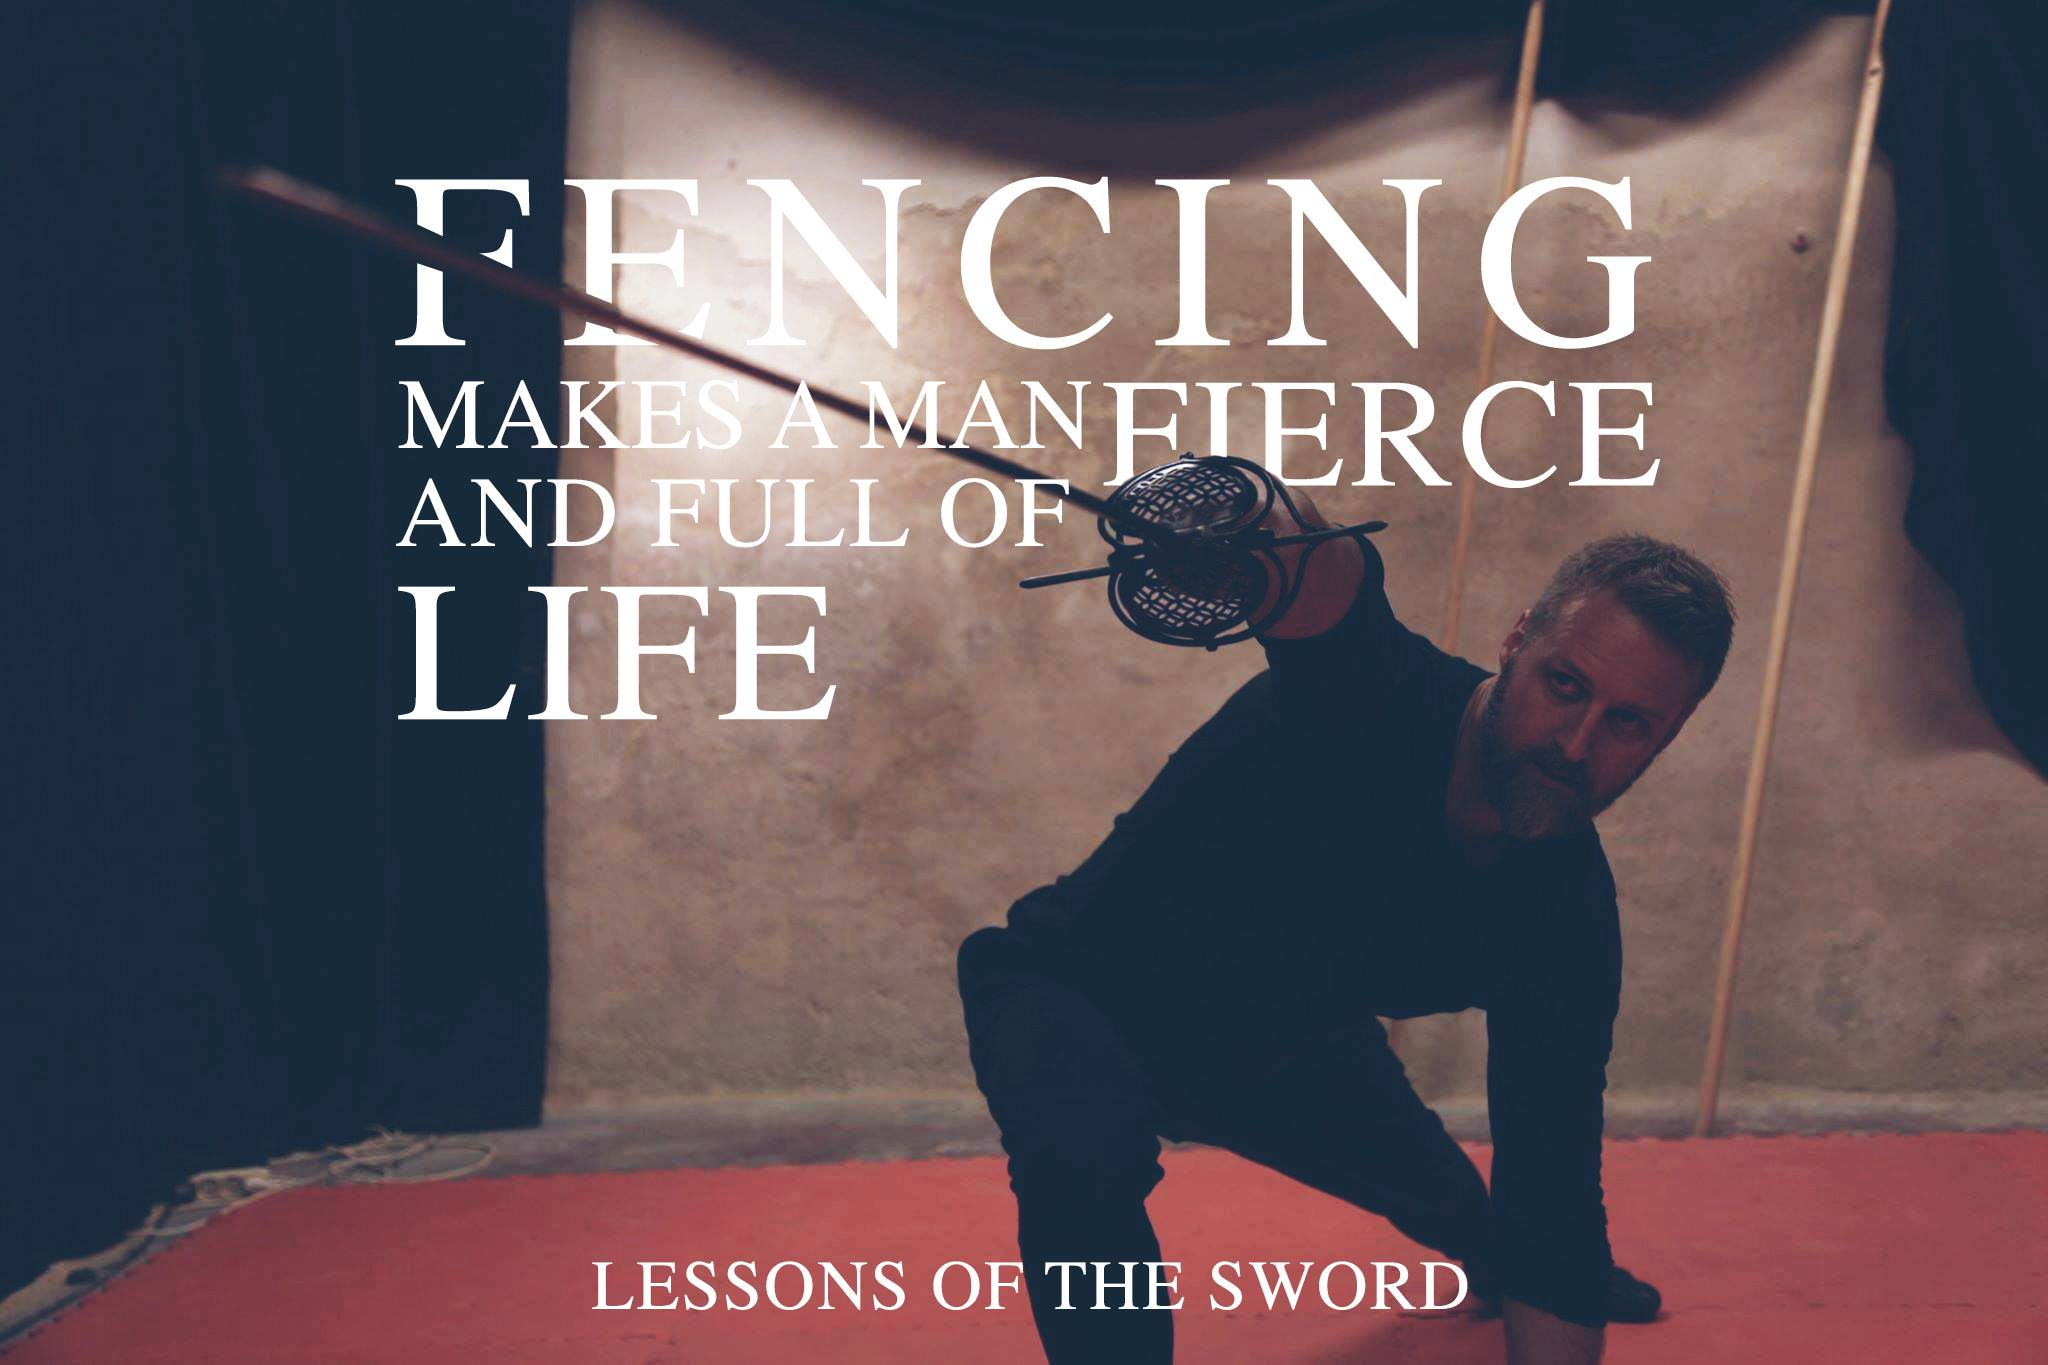 Lessons of the sword – Fencing makes a man fierce and full of life